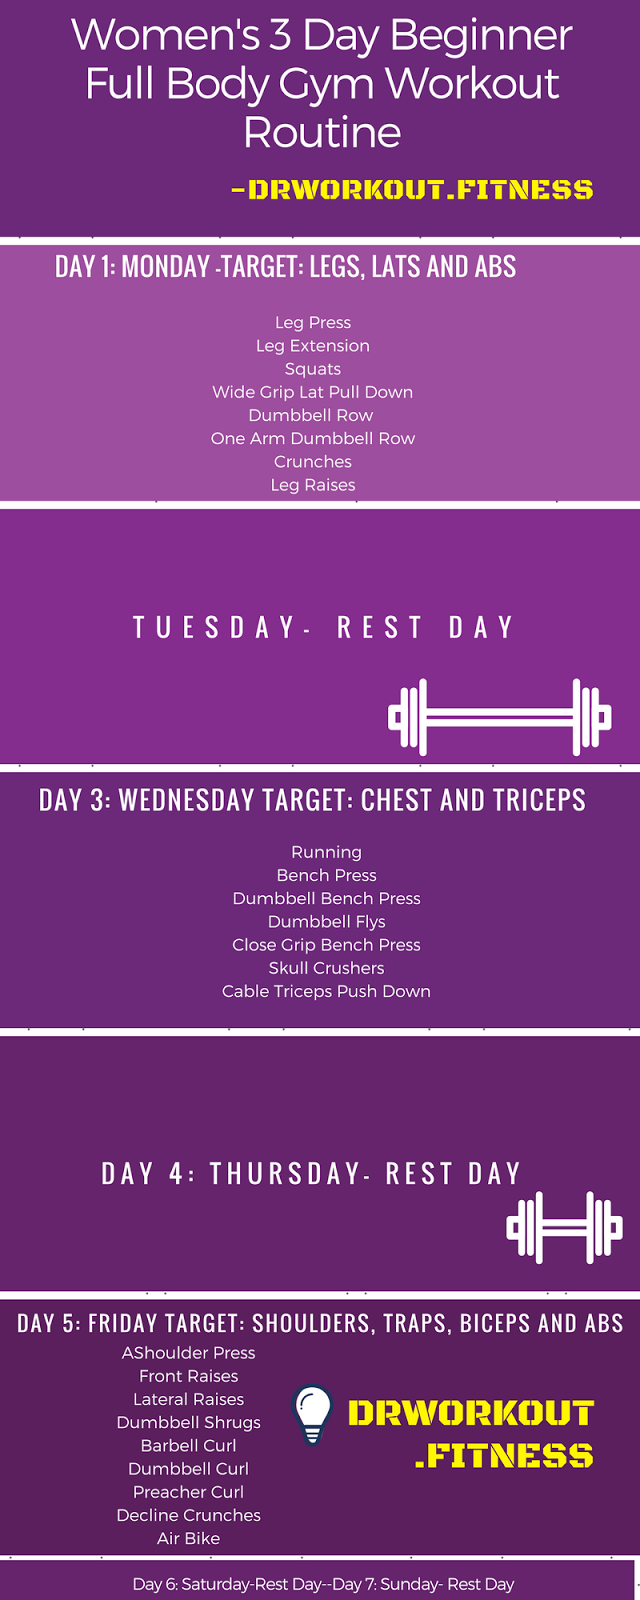 3 days Beginners full body gym workout routine for women